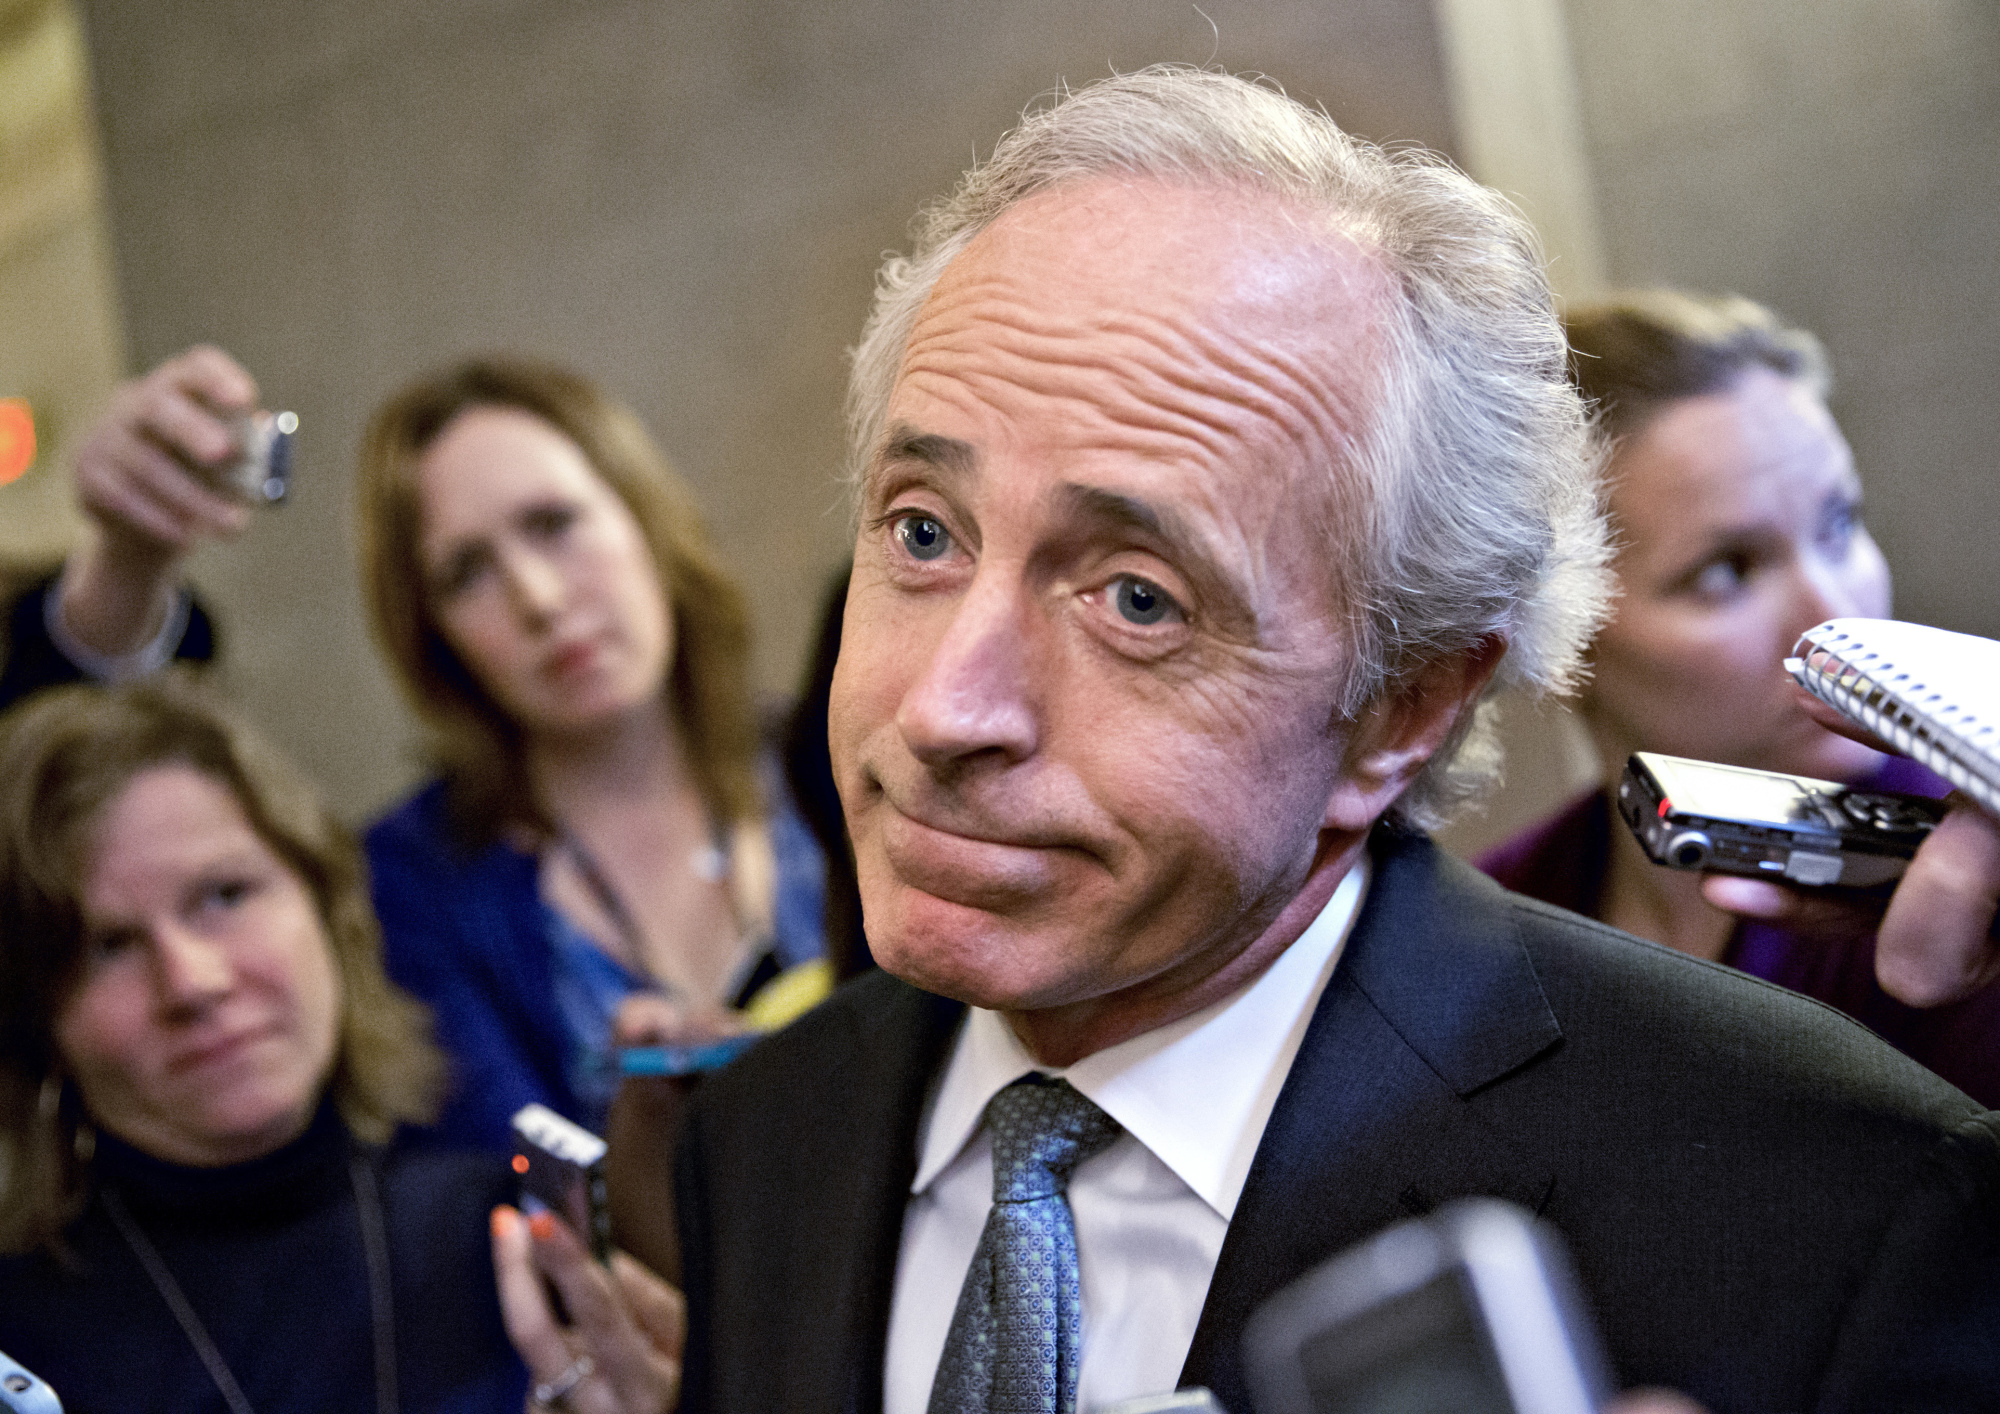 Key Trump critic to quit Senate as president feuds with lawmakers